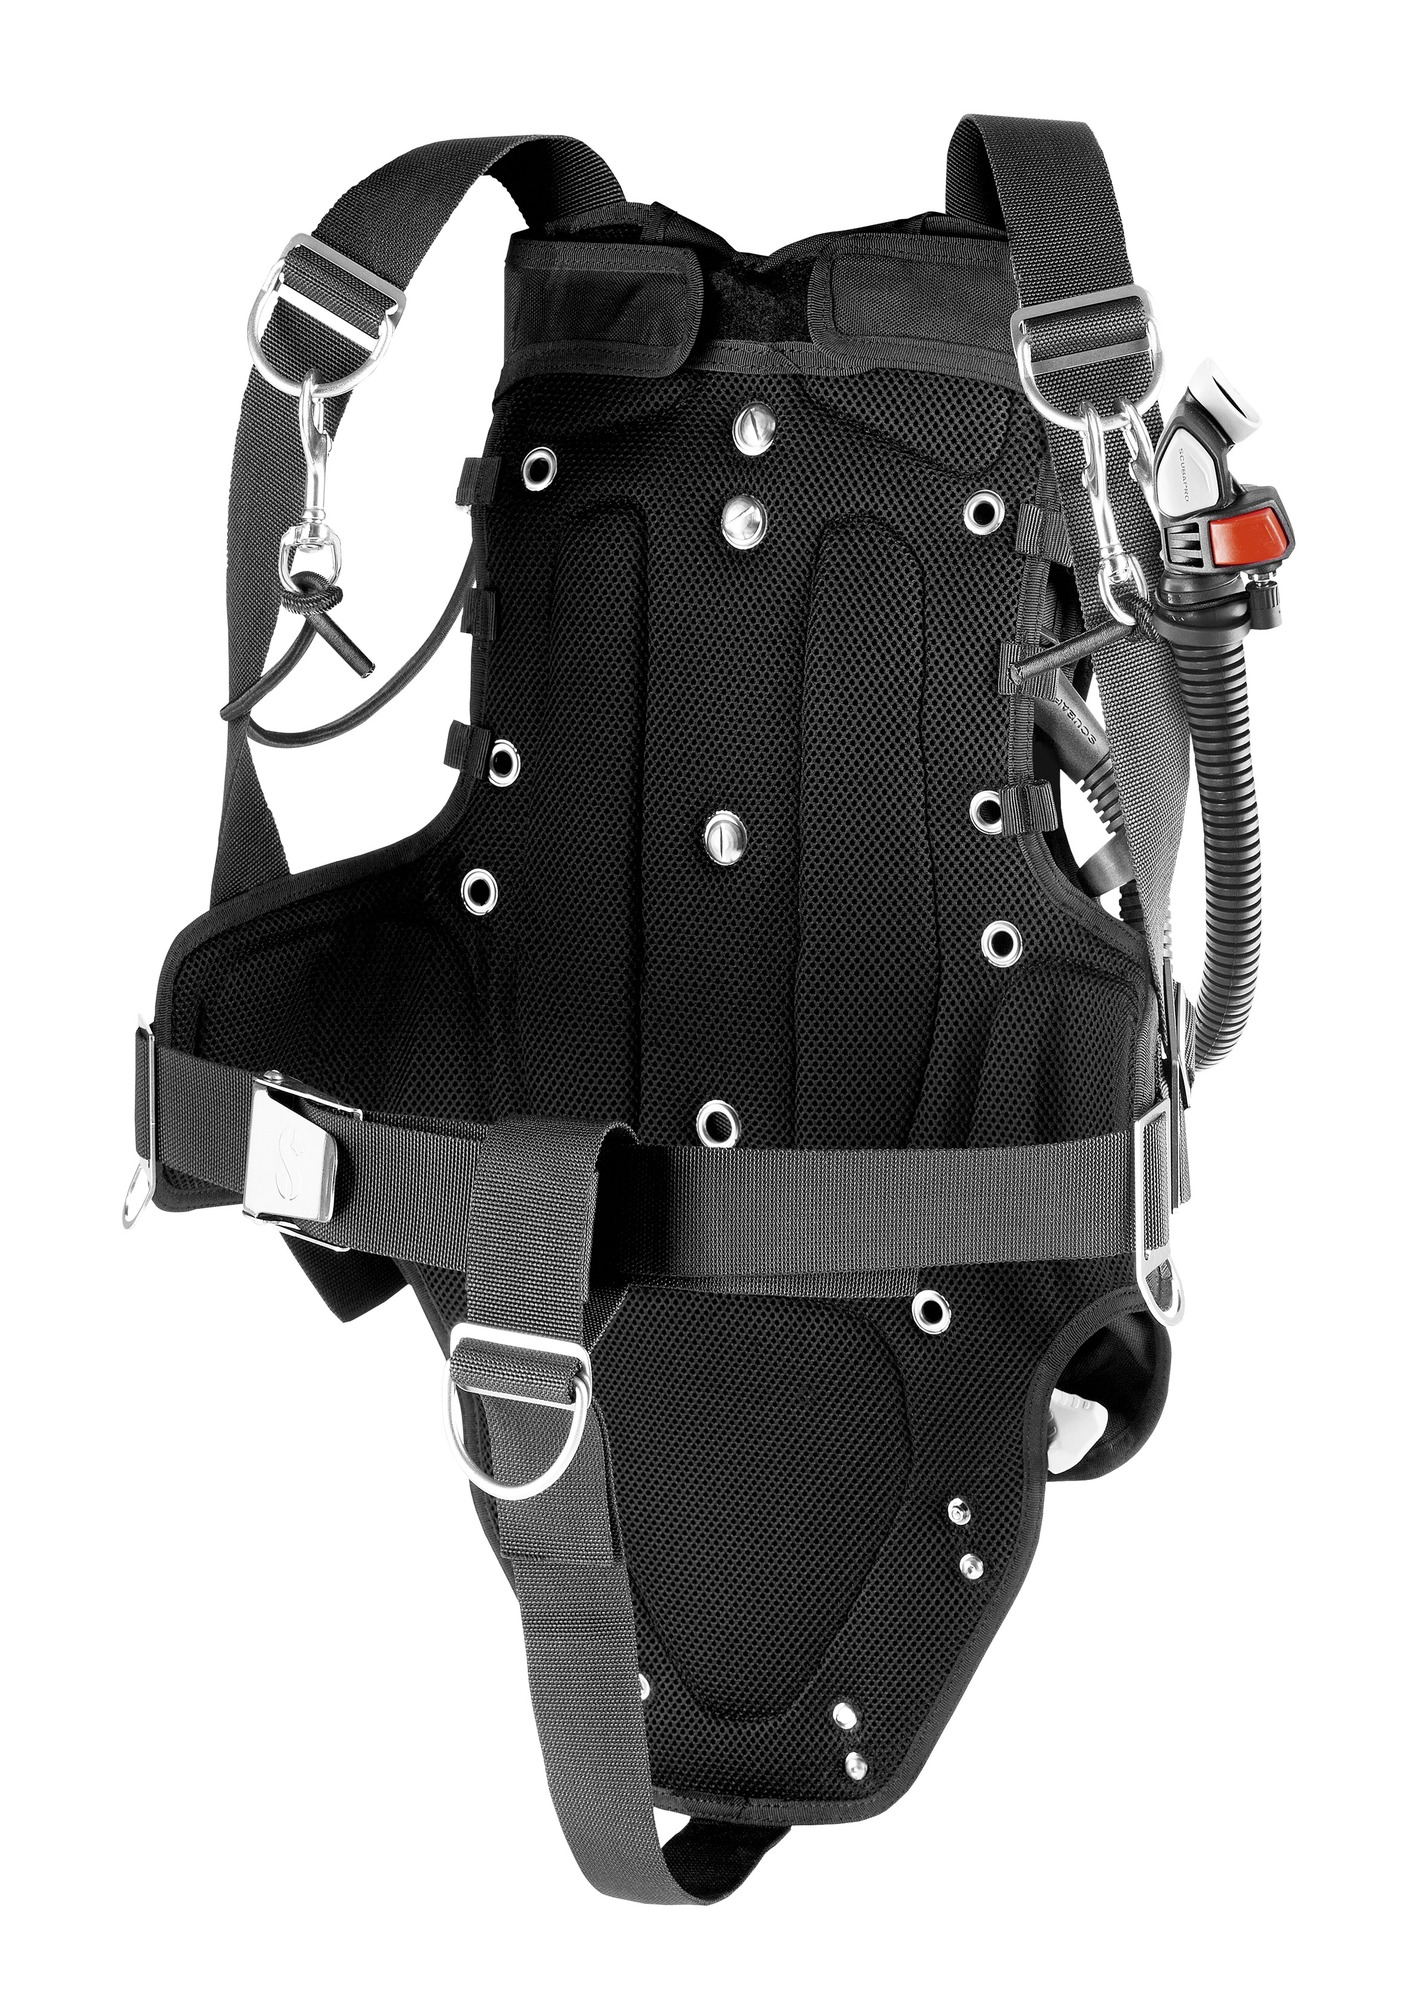 Sidemount bcds and accessories archives dan 39 s dive shop - Dive rite sidemount ...